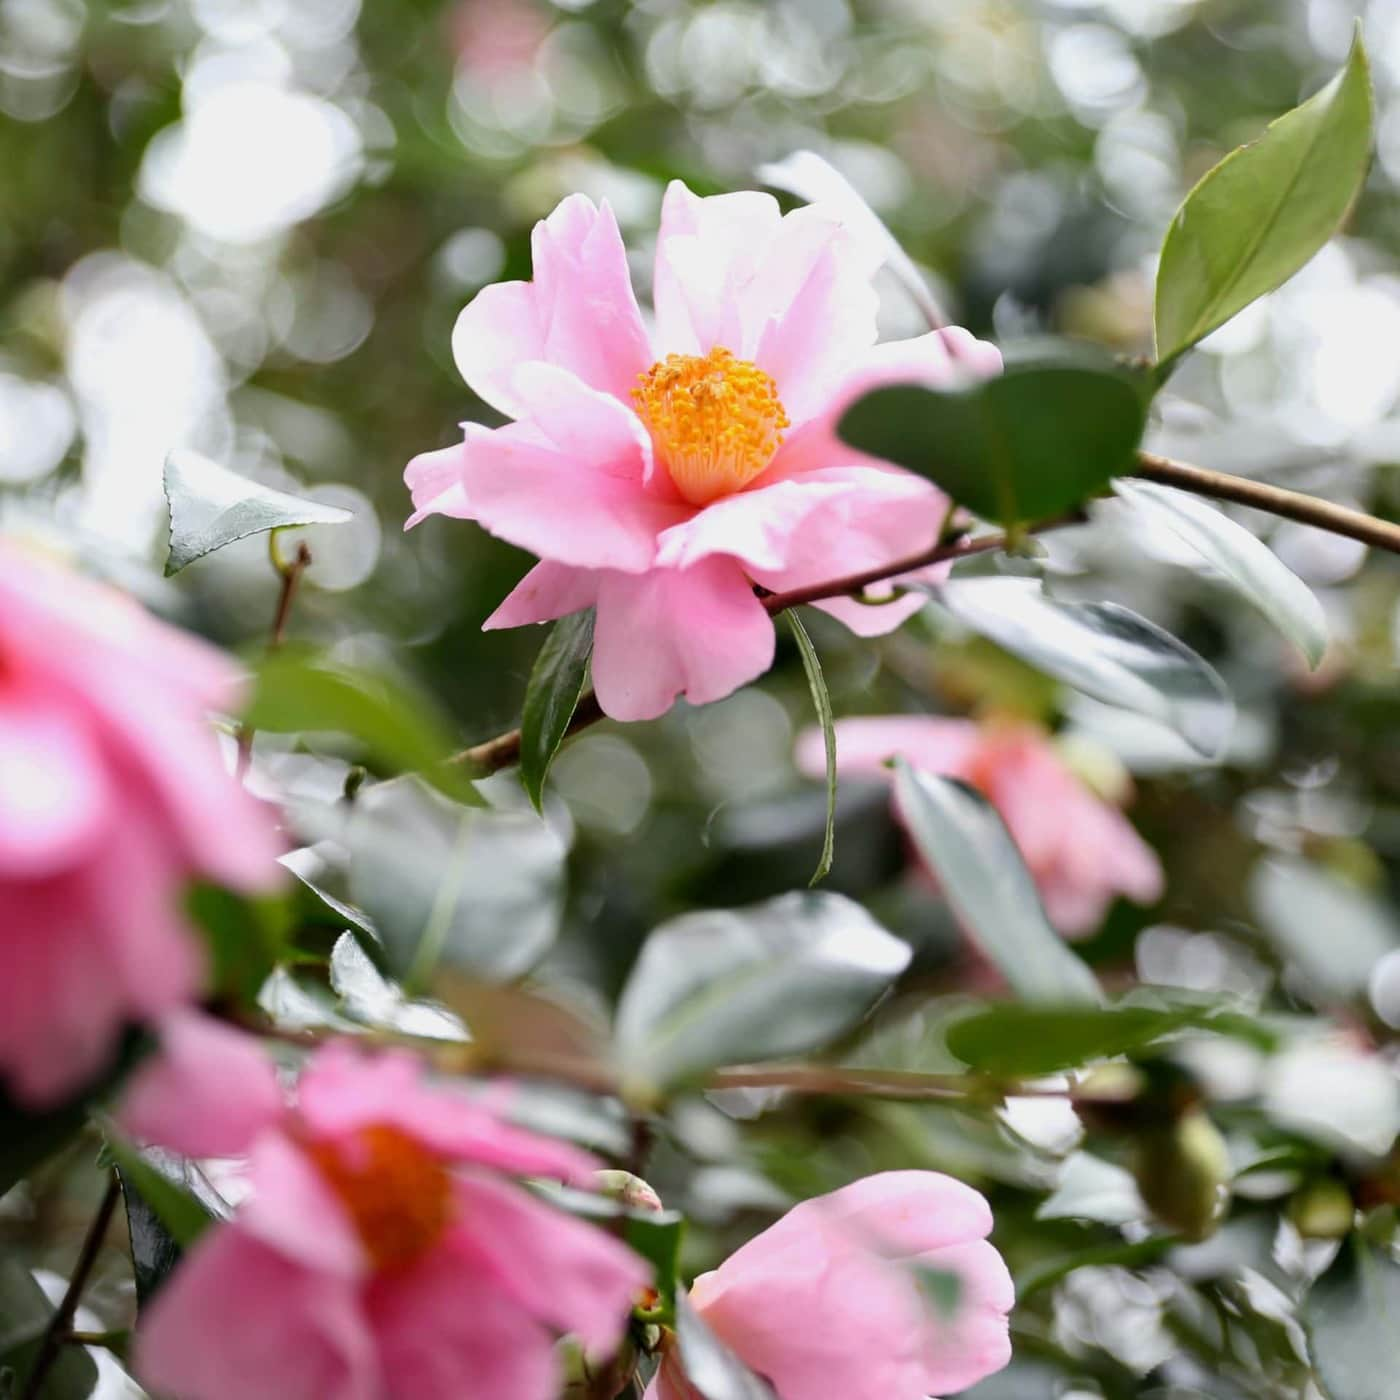 Camellia reticulata × sasanqua 'Show Girl' winter flowering camellias